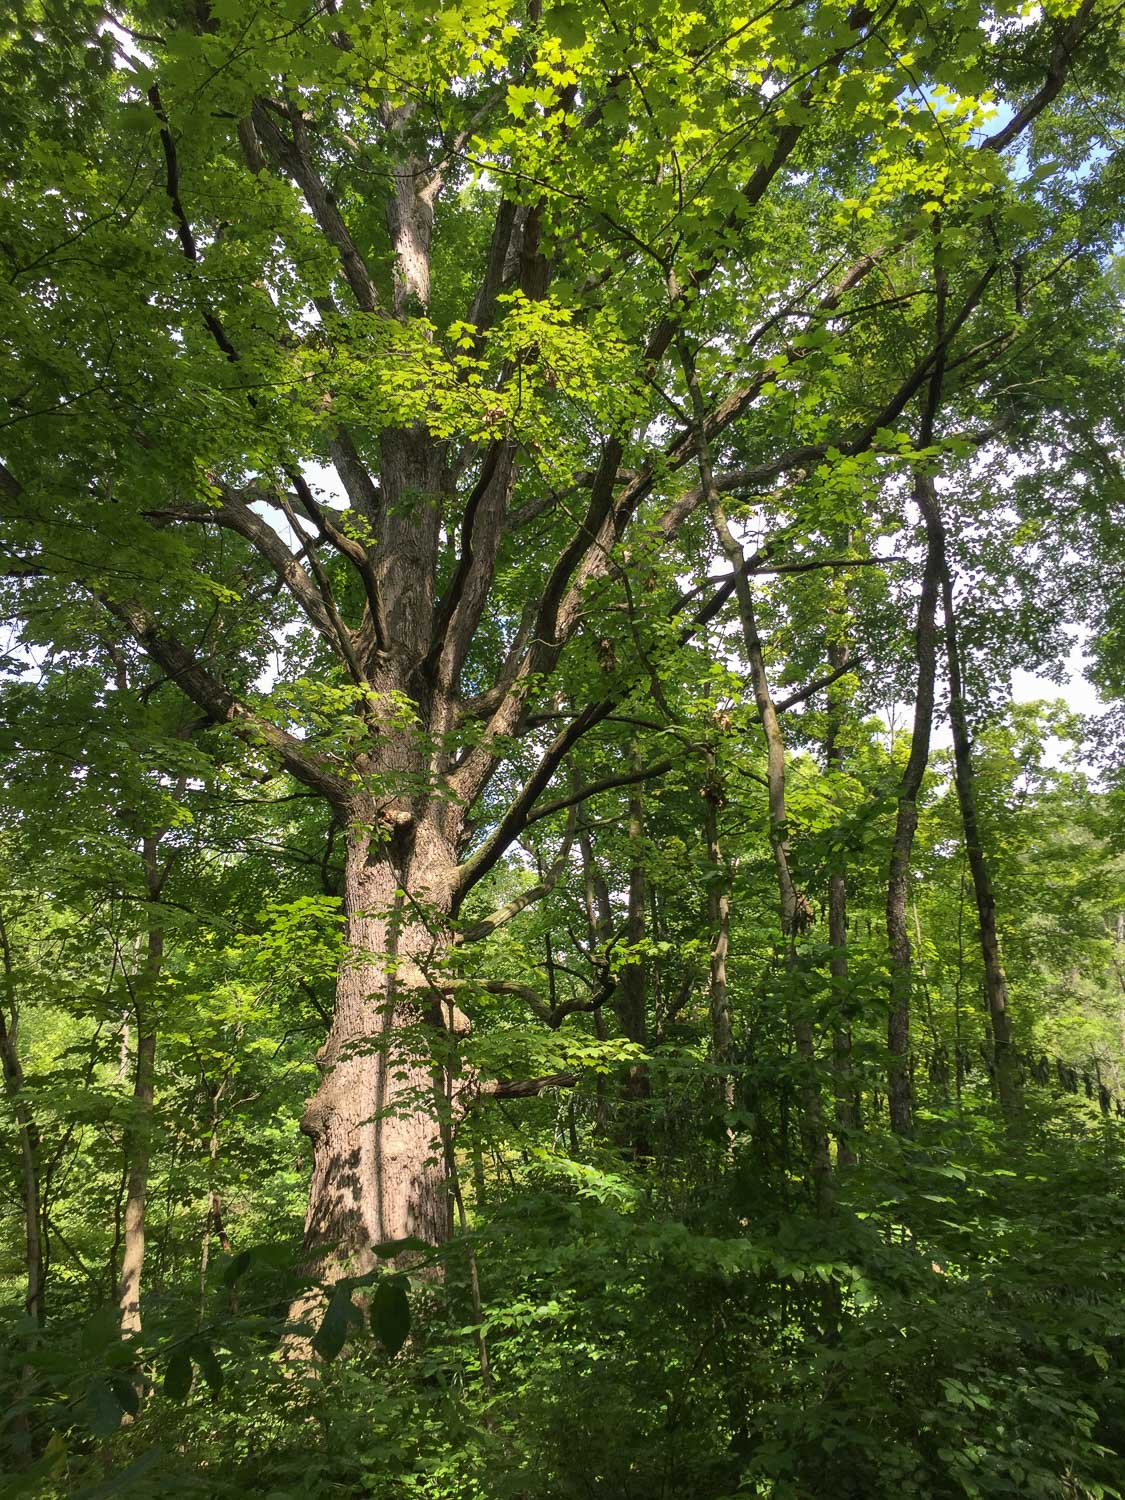 Huge tree in Ohio forest.